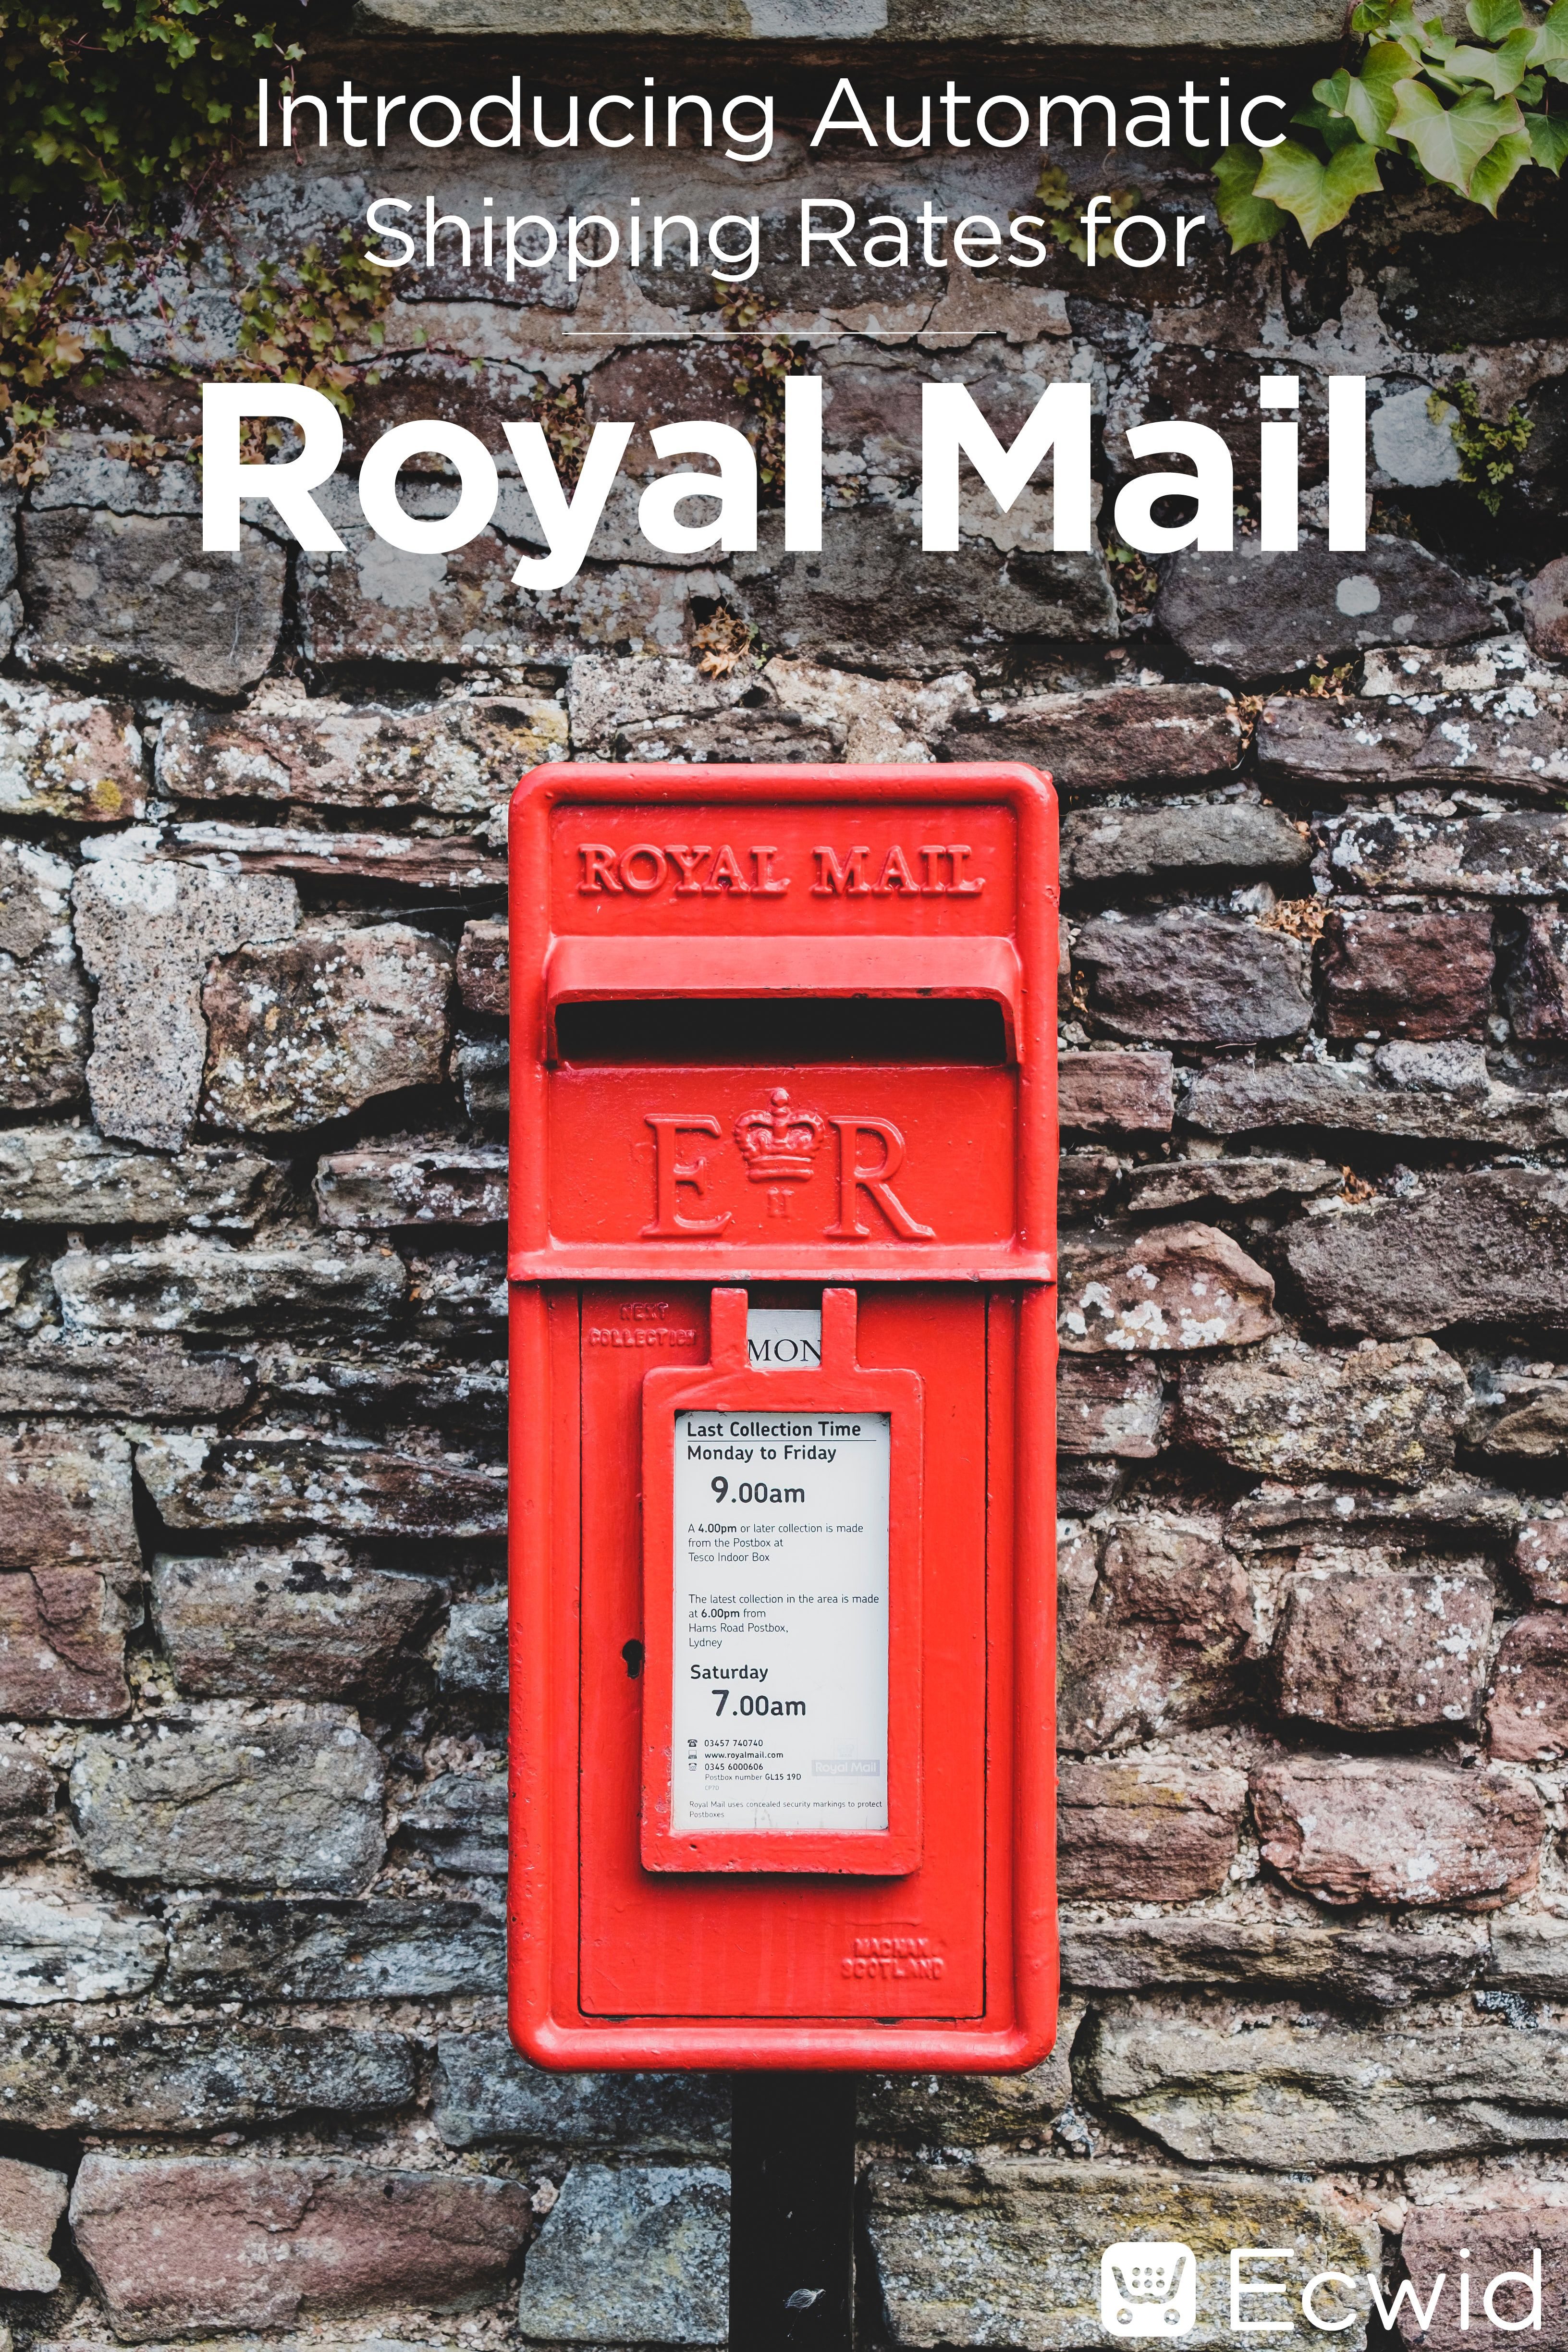 Introducing Automatic Shipping Rates for Royal Mail in